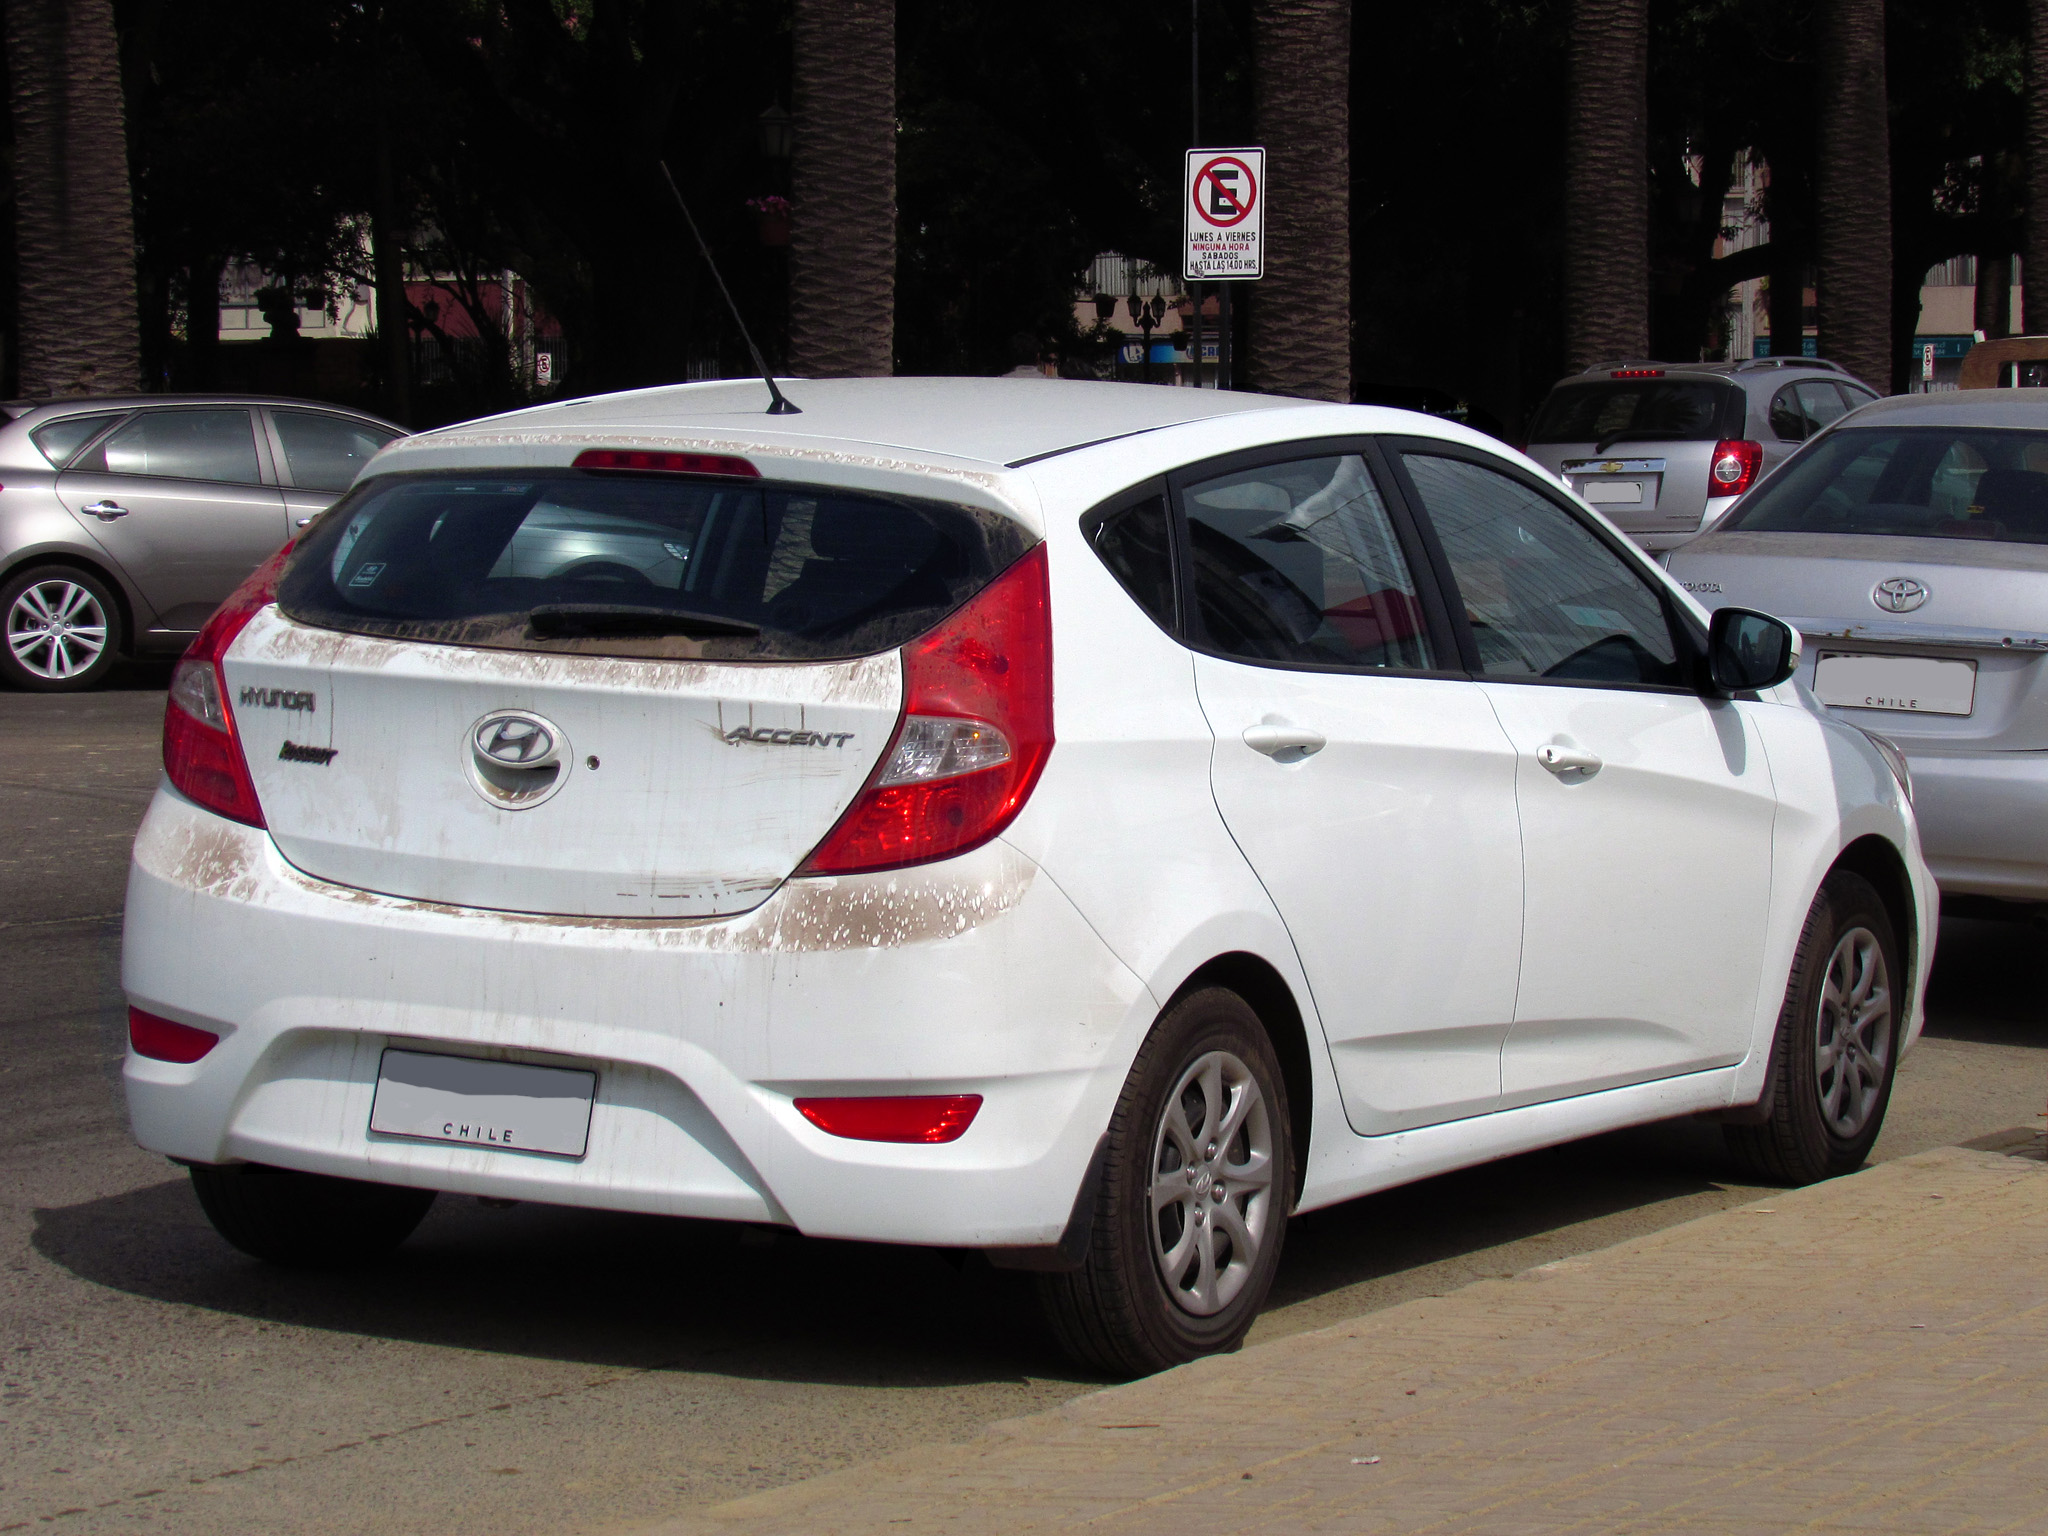 2013 hyundai accent hatchback images galleries with a bite. Black Bedroom Furniture Sets. Home Design Ideas